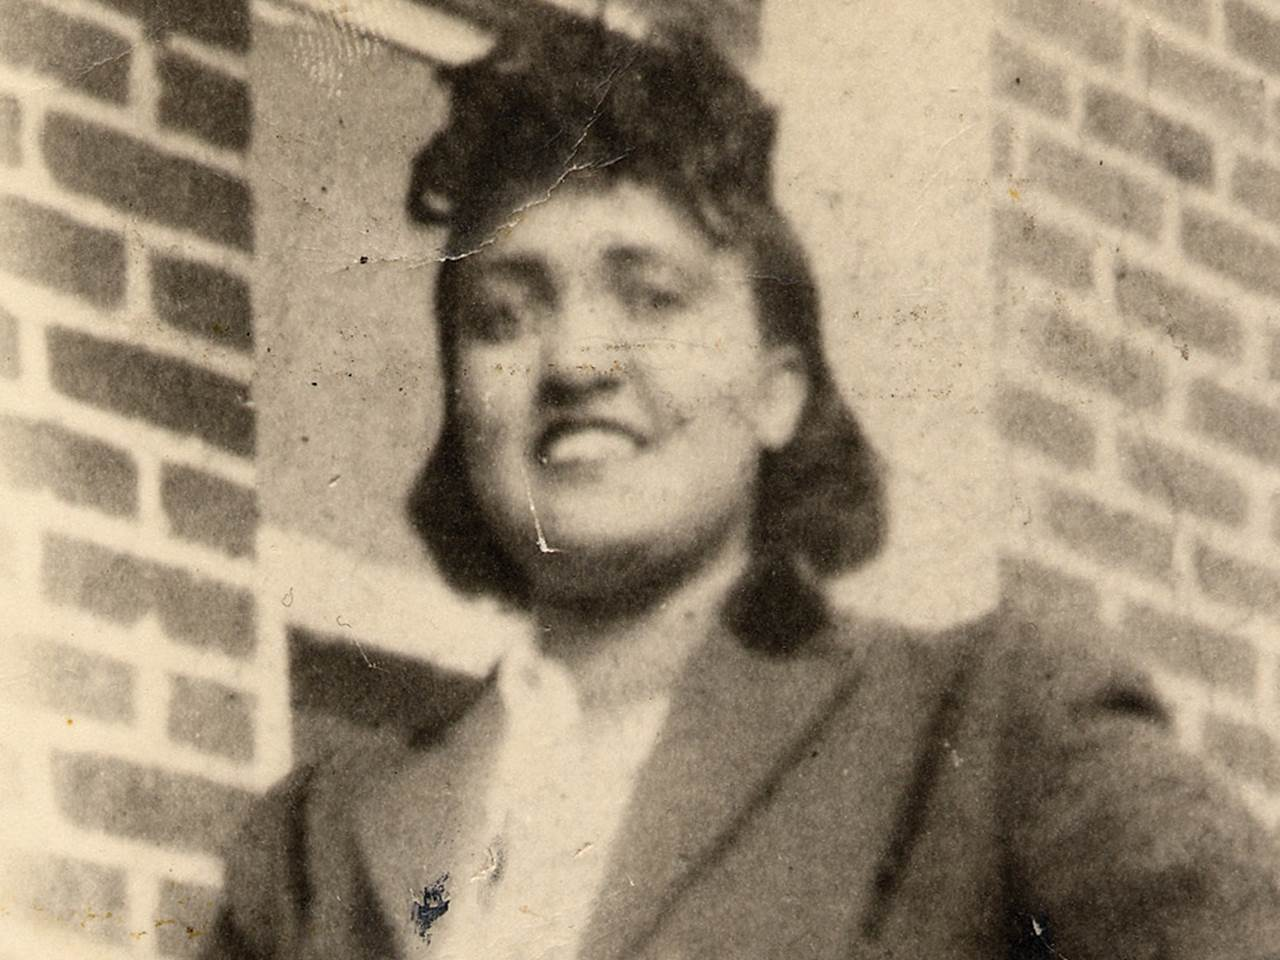 Henrietta Lacks, l'immortelle afro-américaine !